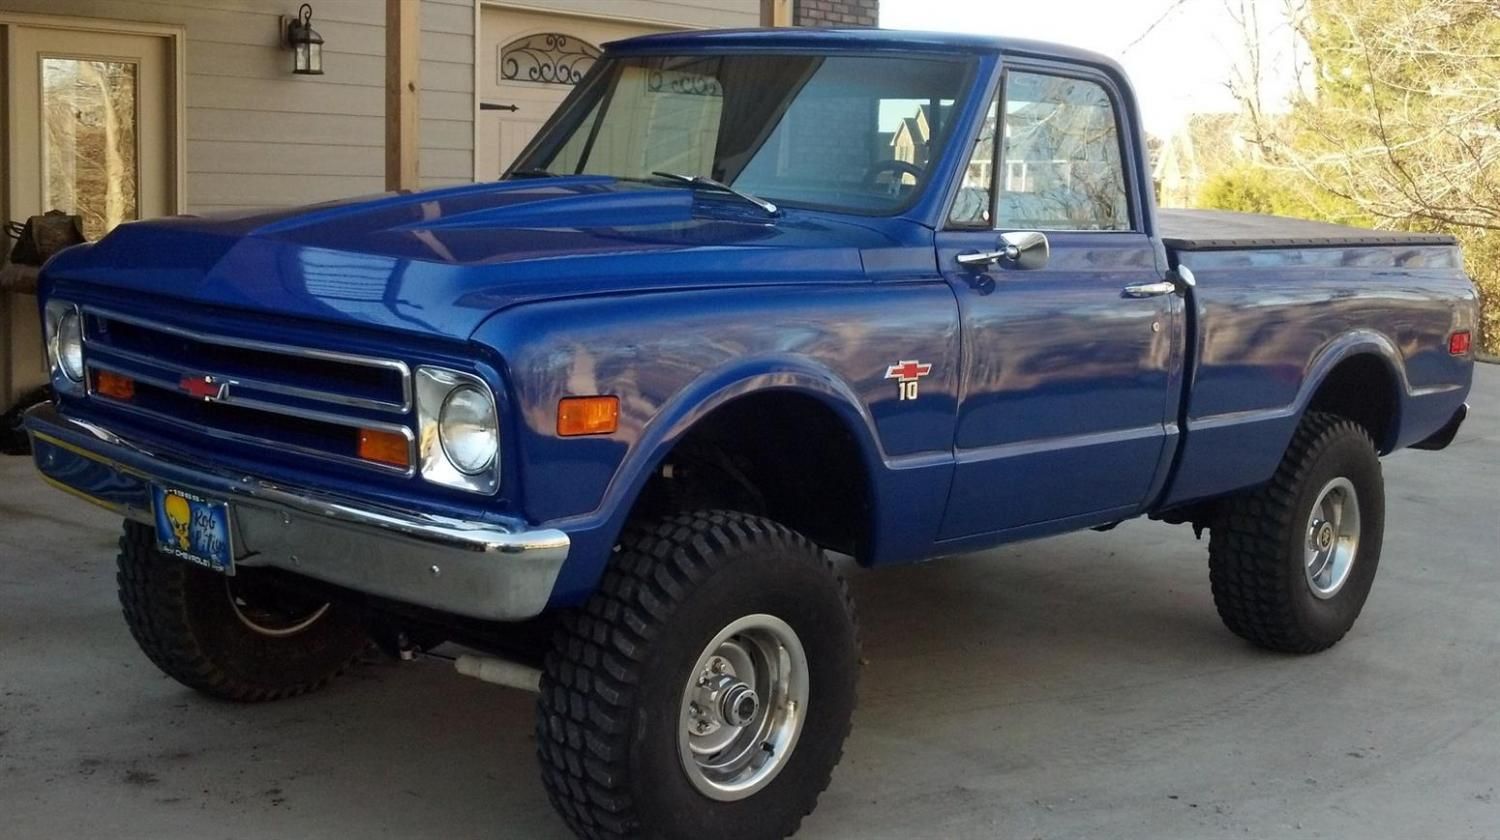 1964 chevrolet c10 step side pickup for sale classic car 64 66 chevy c10 pinterest chevrolet cars and chevy